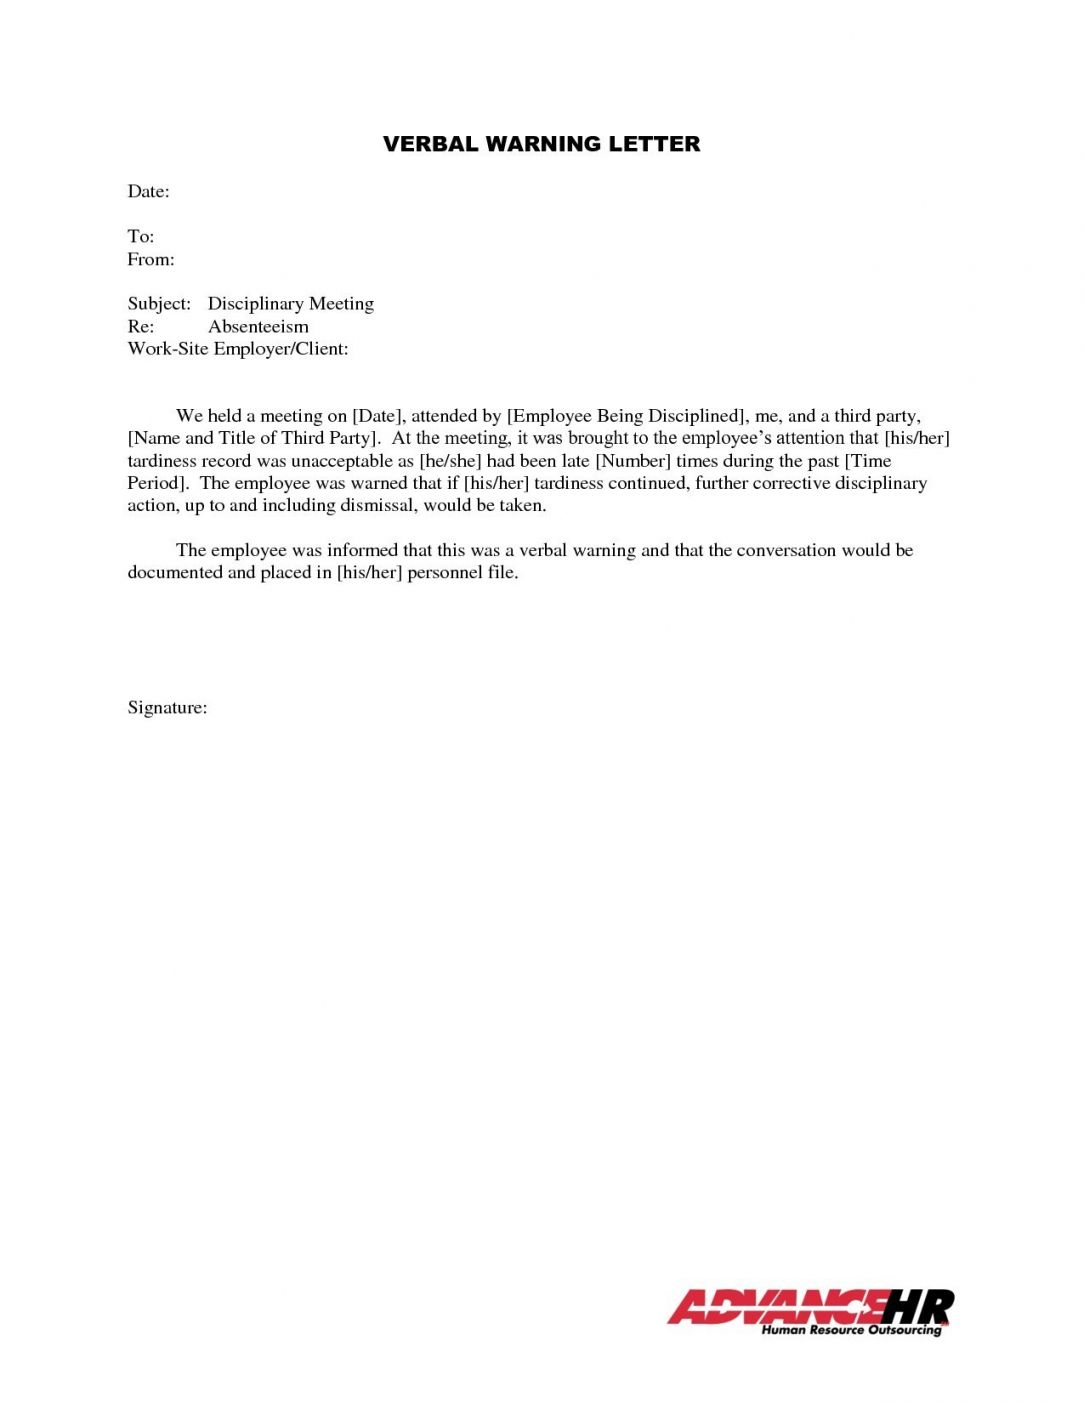 Explore Our Image Of Final Warning Letter For Lateness Formal Letter Writing Lettering Types Of Business Letter